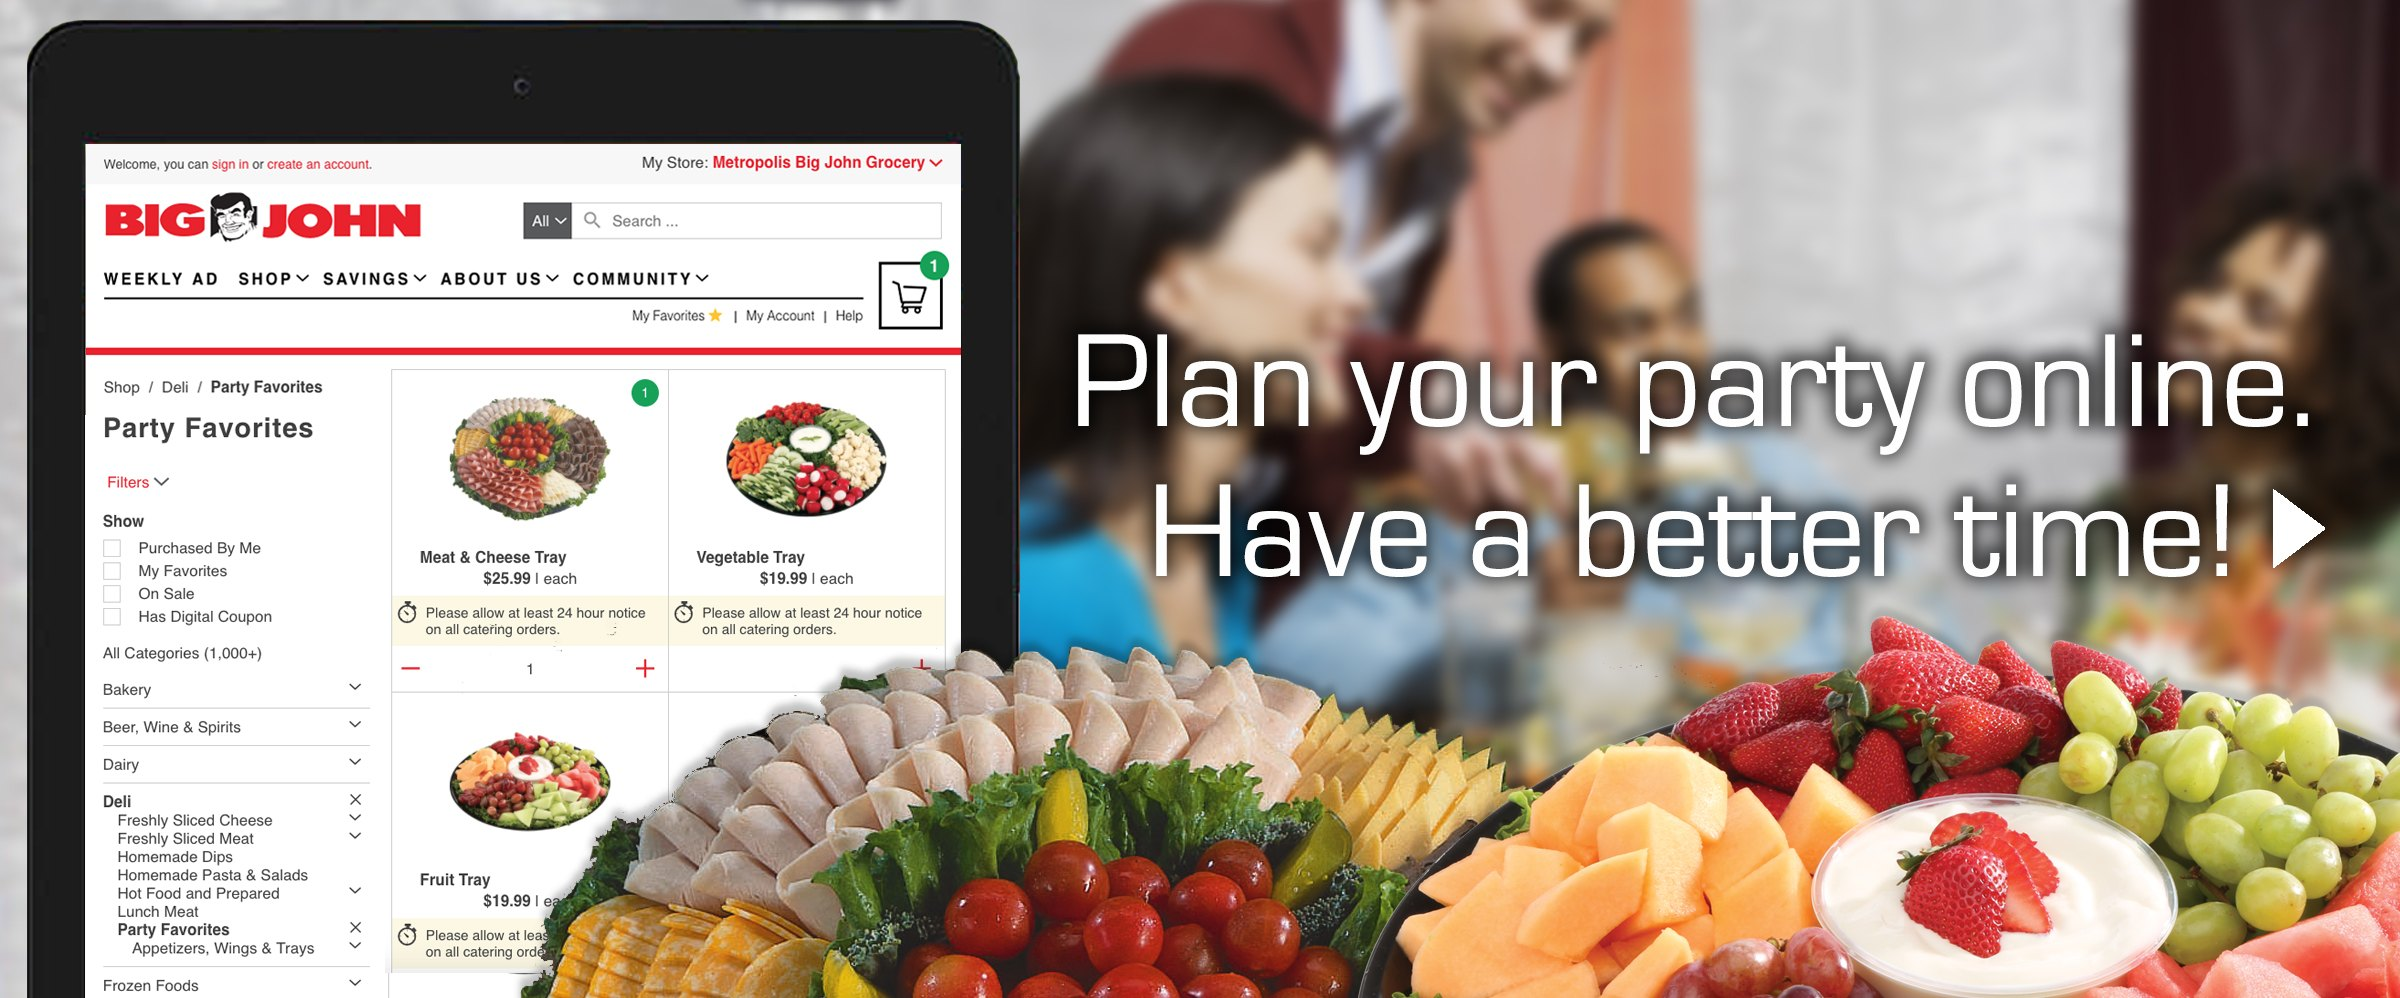 Plan your party online. Have a better time! Go shop for party trays online. >